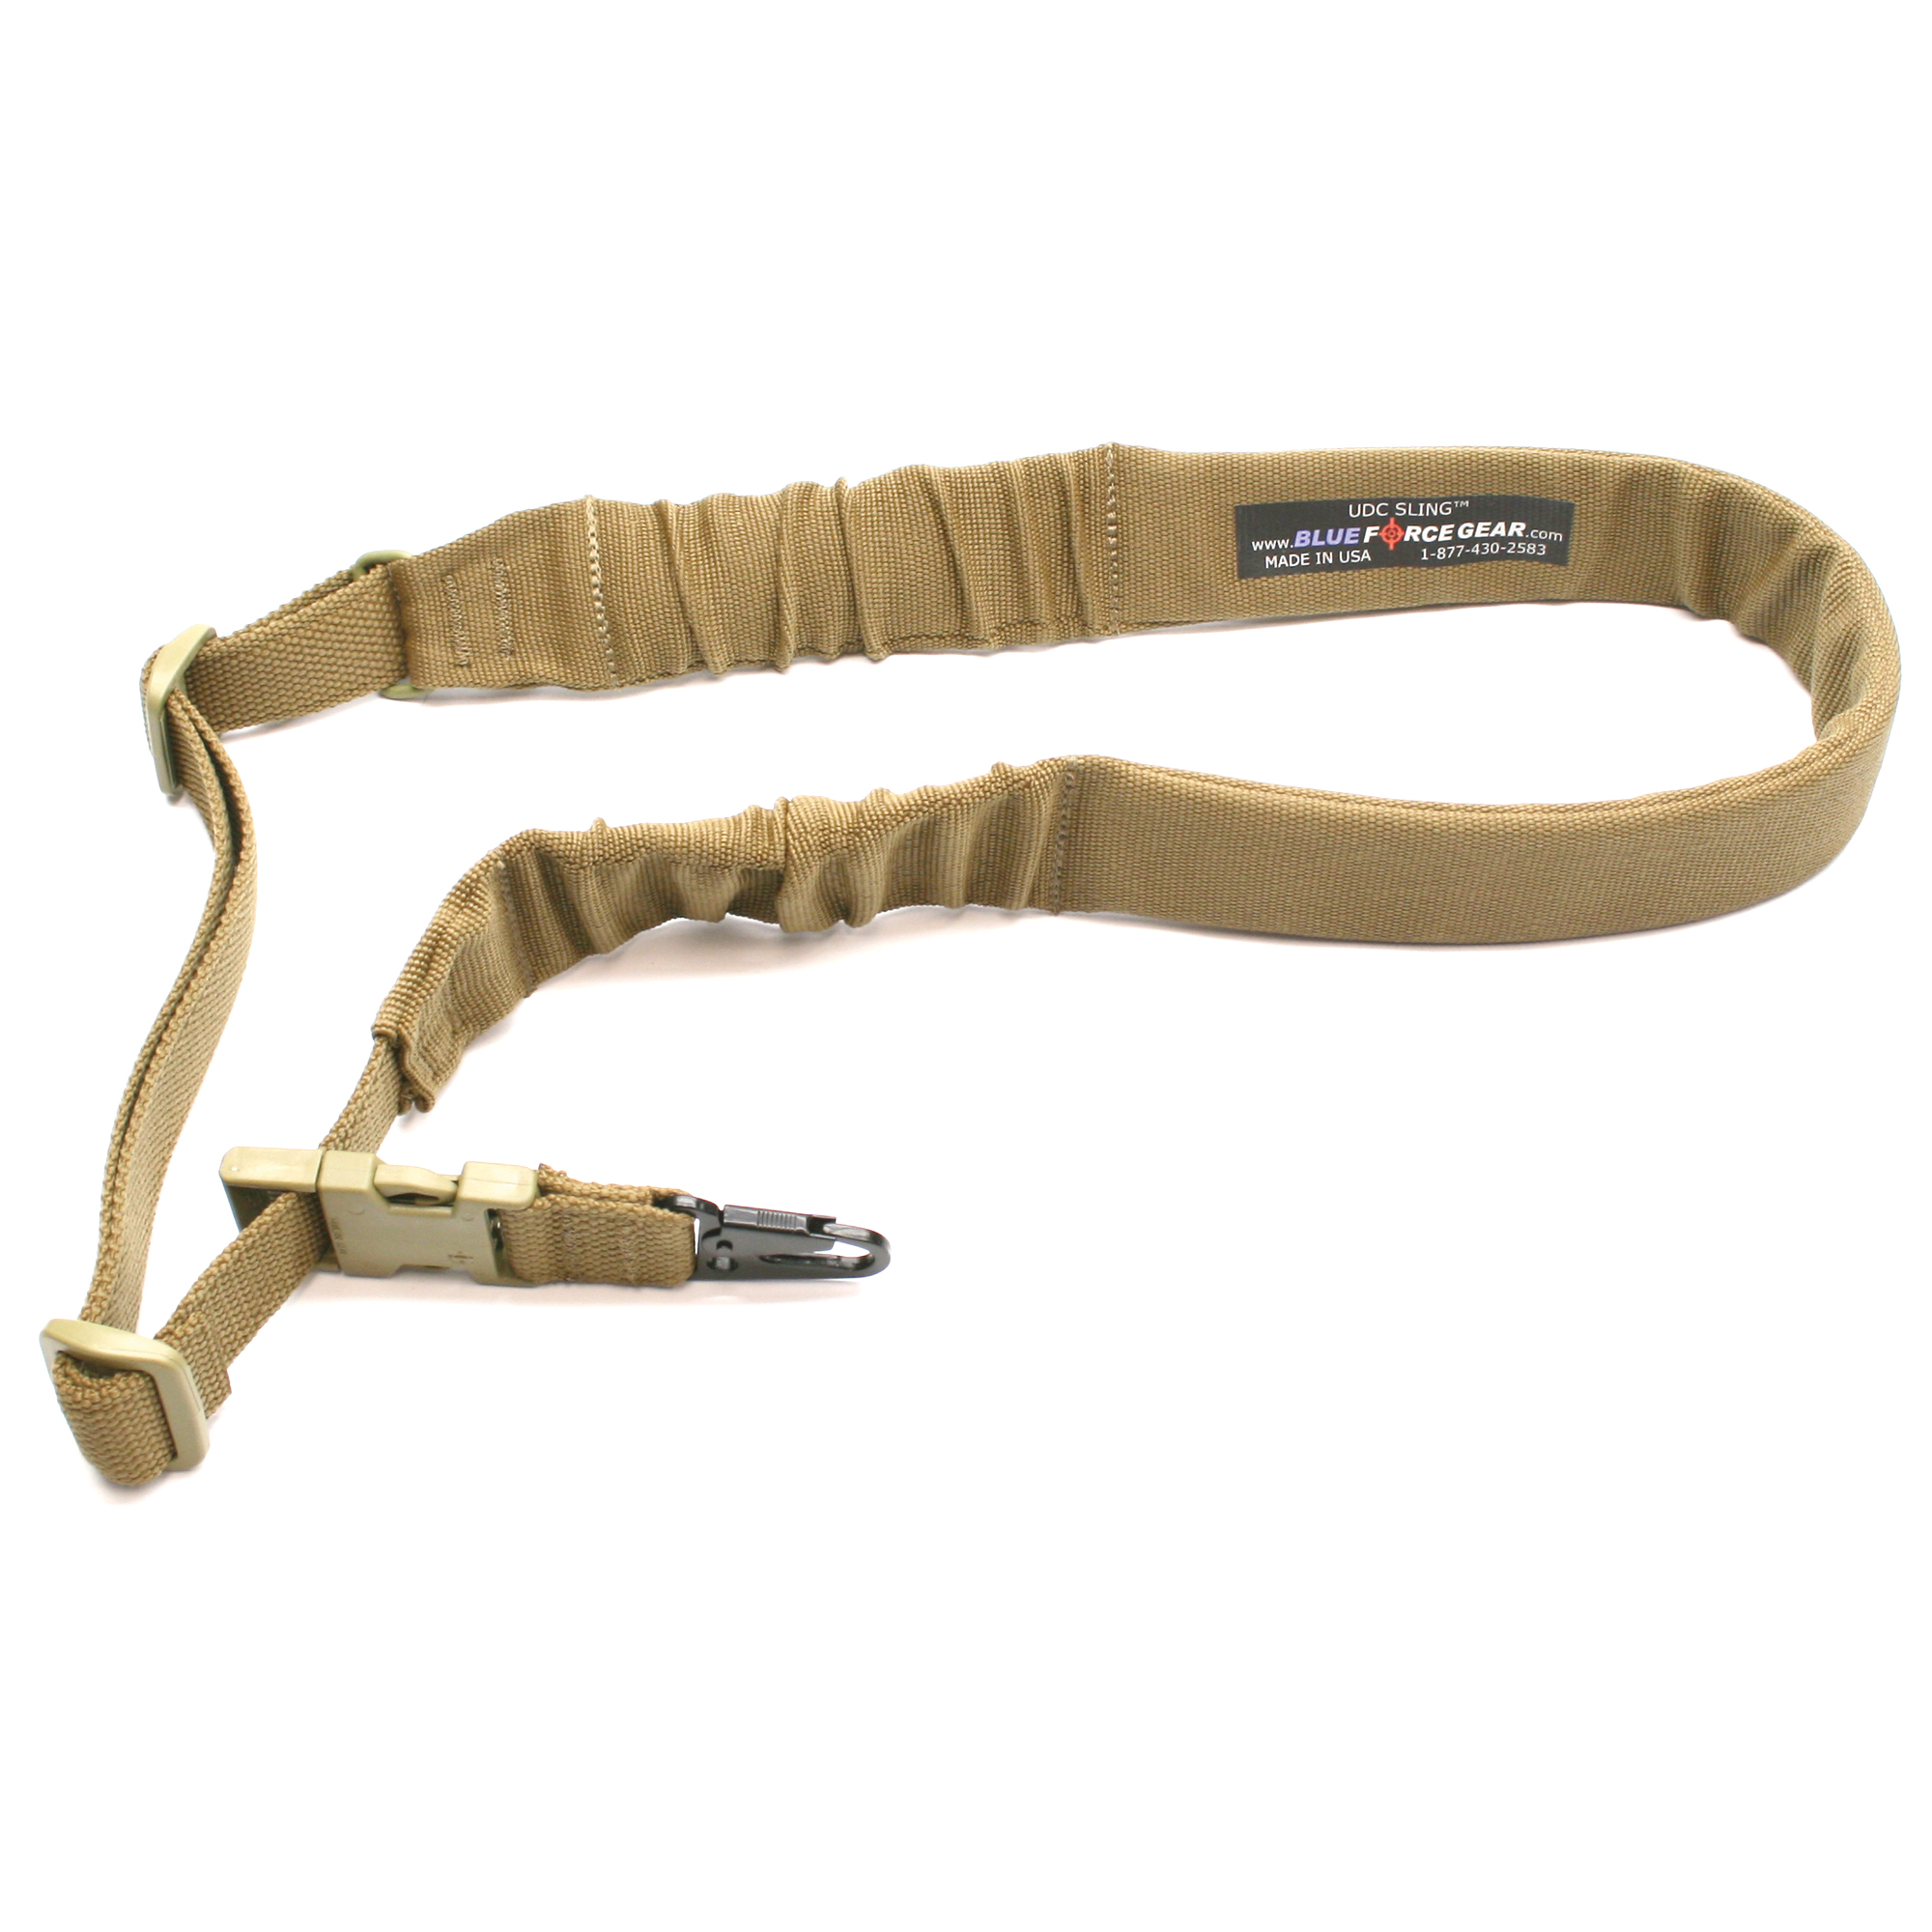 """The UDC Padded Single Point Bungee Sling is a dedicated single point sling that is both fast and comfortable. The UDC Sling has 2"""" inline padding"""" similar to the Padded Vickers Slings for extra comfort that ends in two sections of bungee. The bungee has a travel of approximately 2"""" - enough to absorb shock from movement or transitions but short enough to reduce the risk of facial injuries or sagging weapons. The overall length is adjustable"""" ambidextrous"""" and compatible with use over body armor. Along with an overall adjustment range (or circumference as worn) of 35"""" to 55."""""""